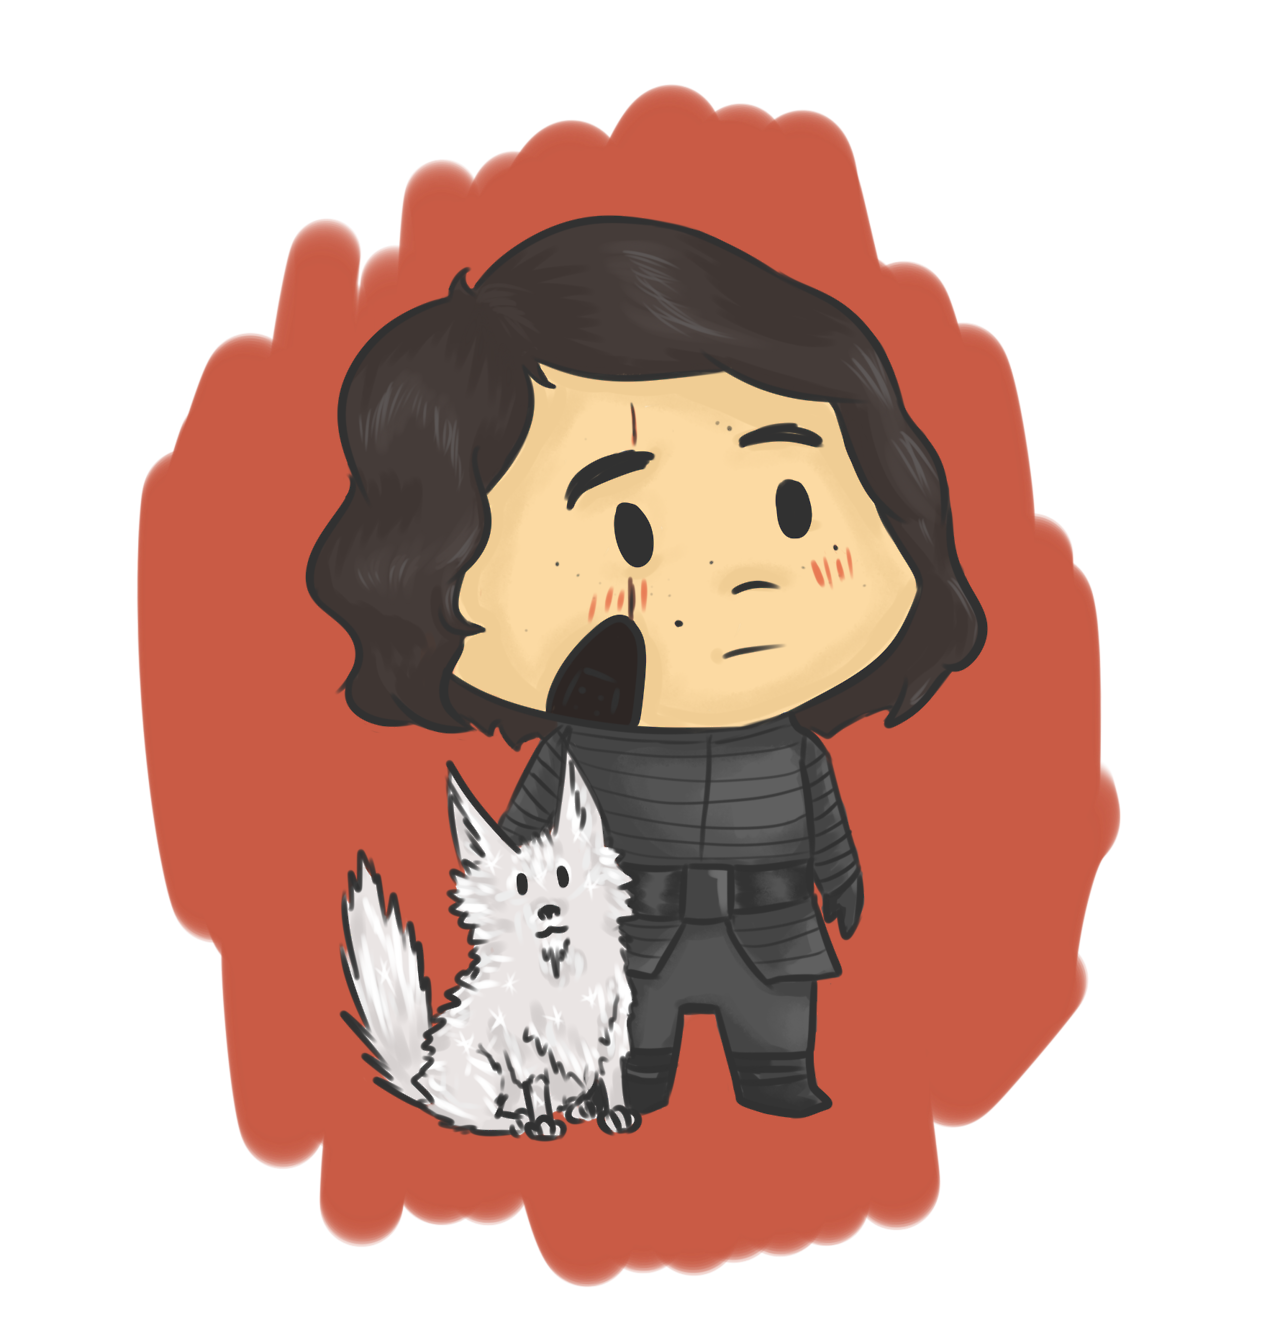 Hurt clipart cut wound. Shamelessly draws kylo ren